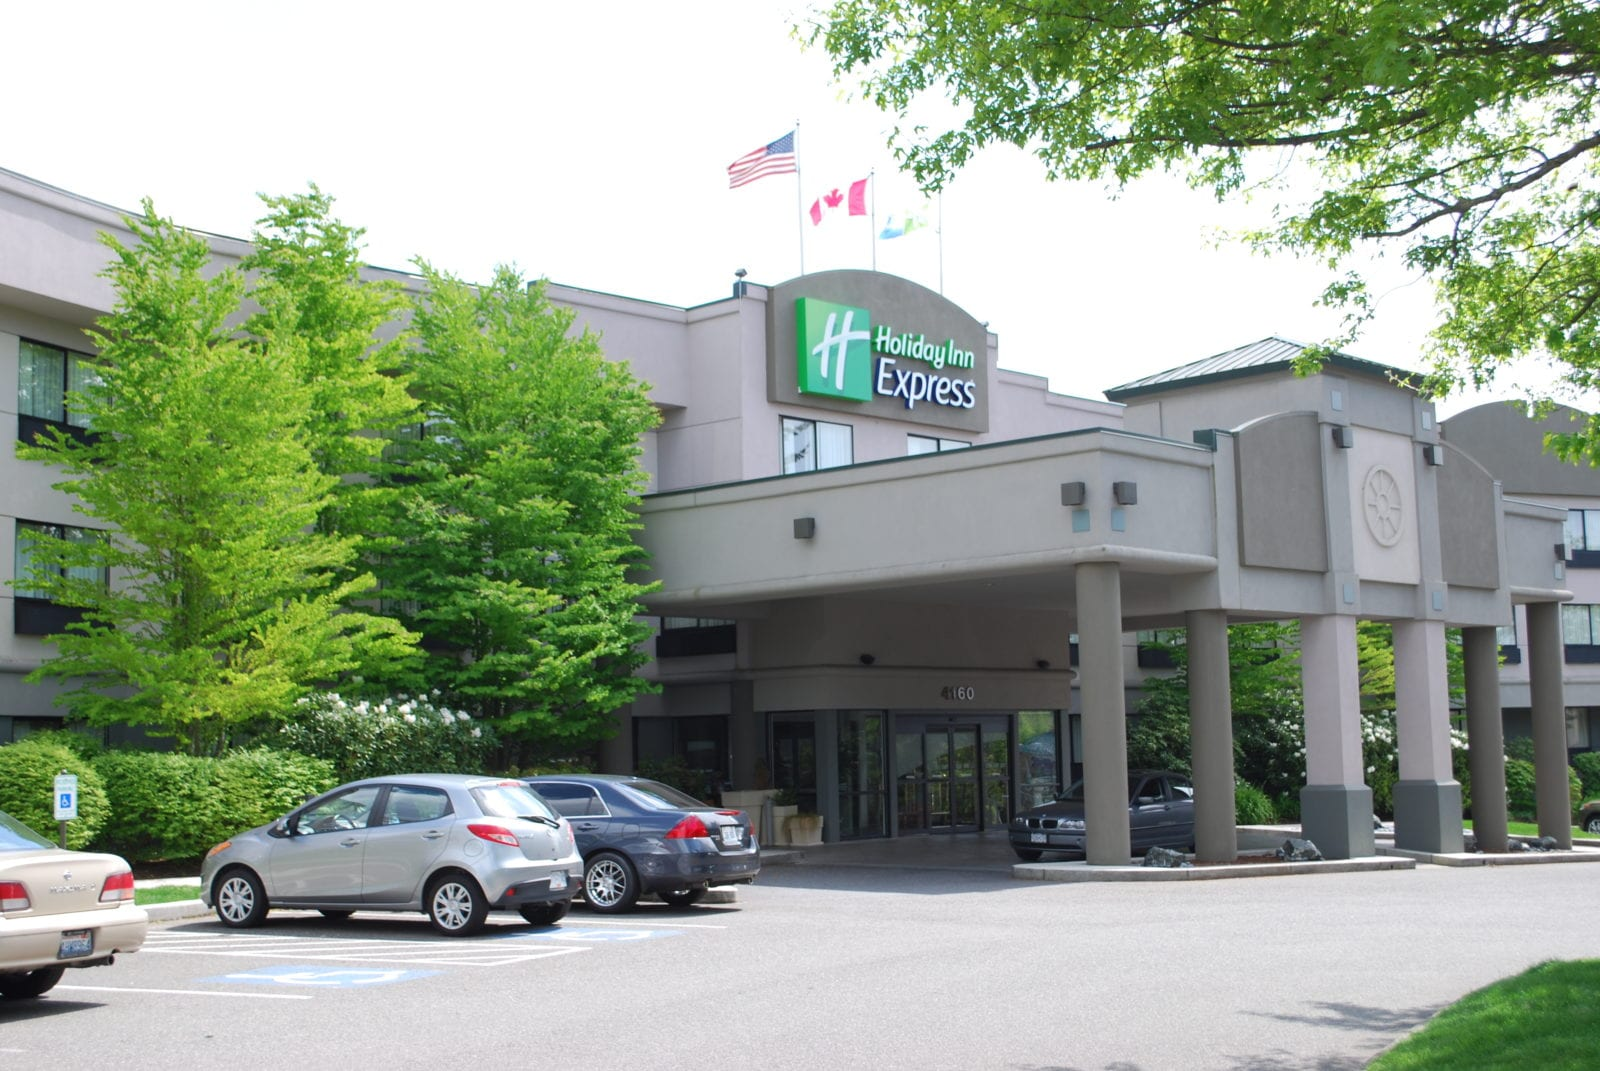 Holiday Inn Express at XXXX Guide Meridian St., Bellingham, WA